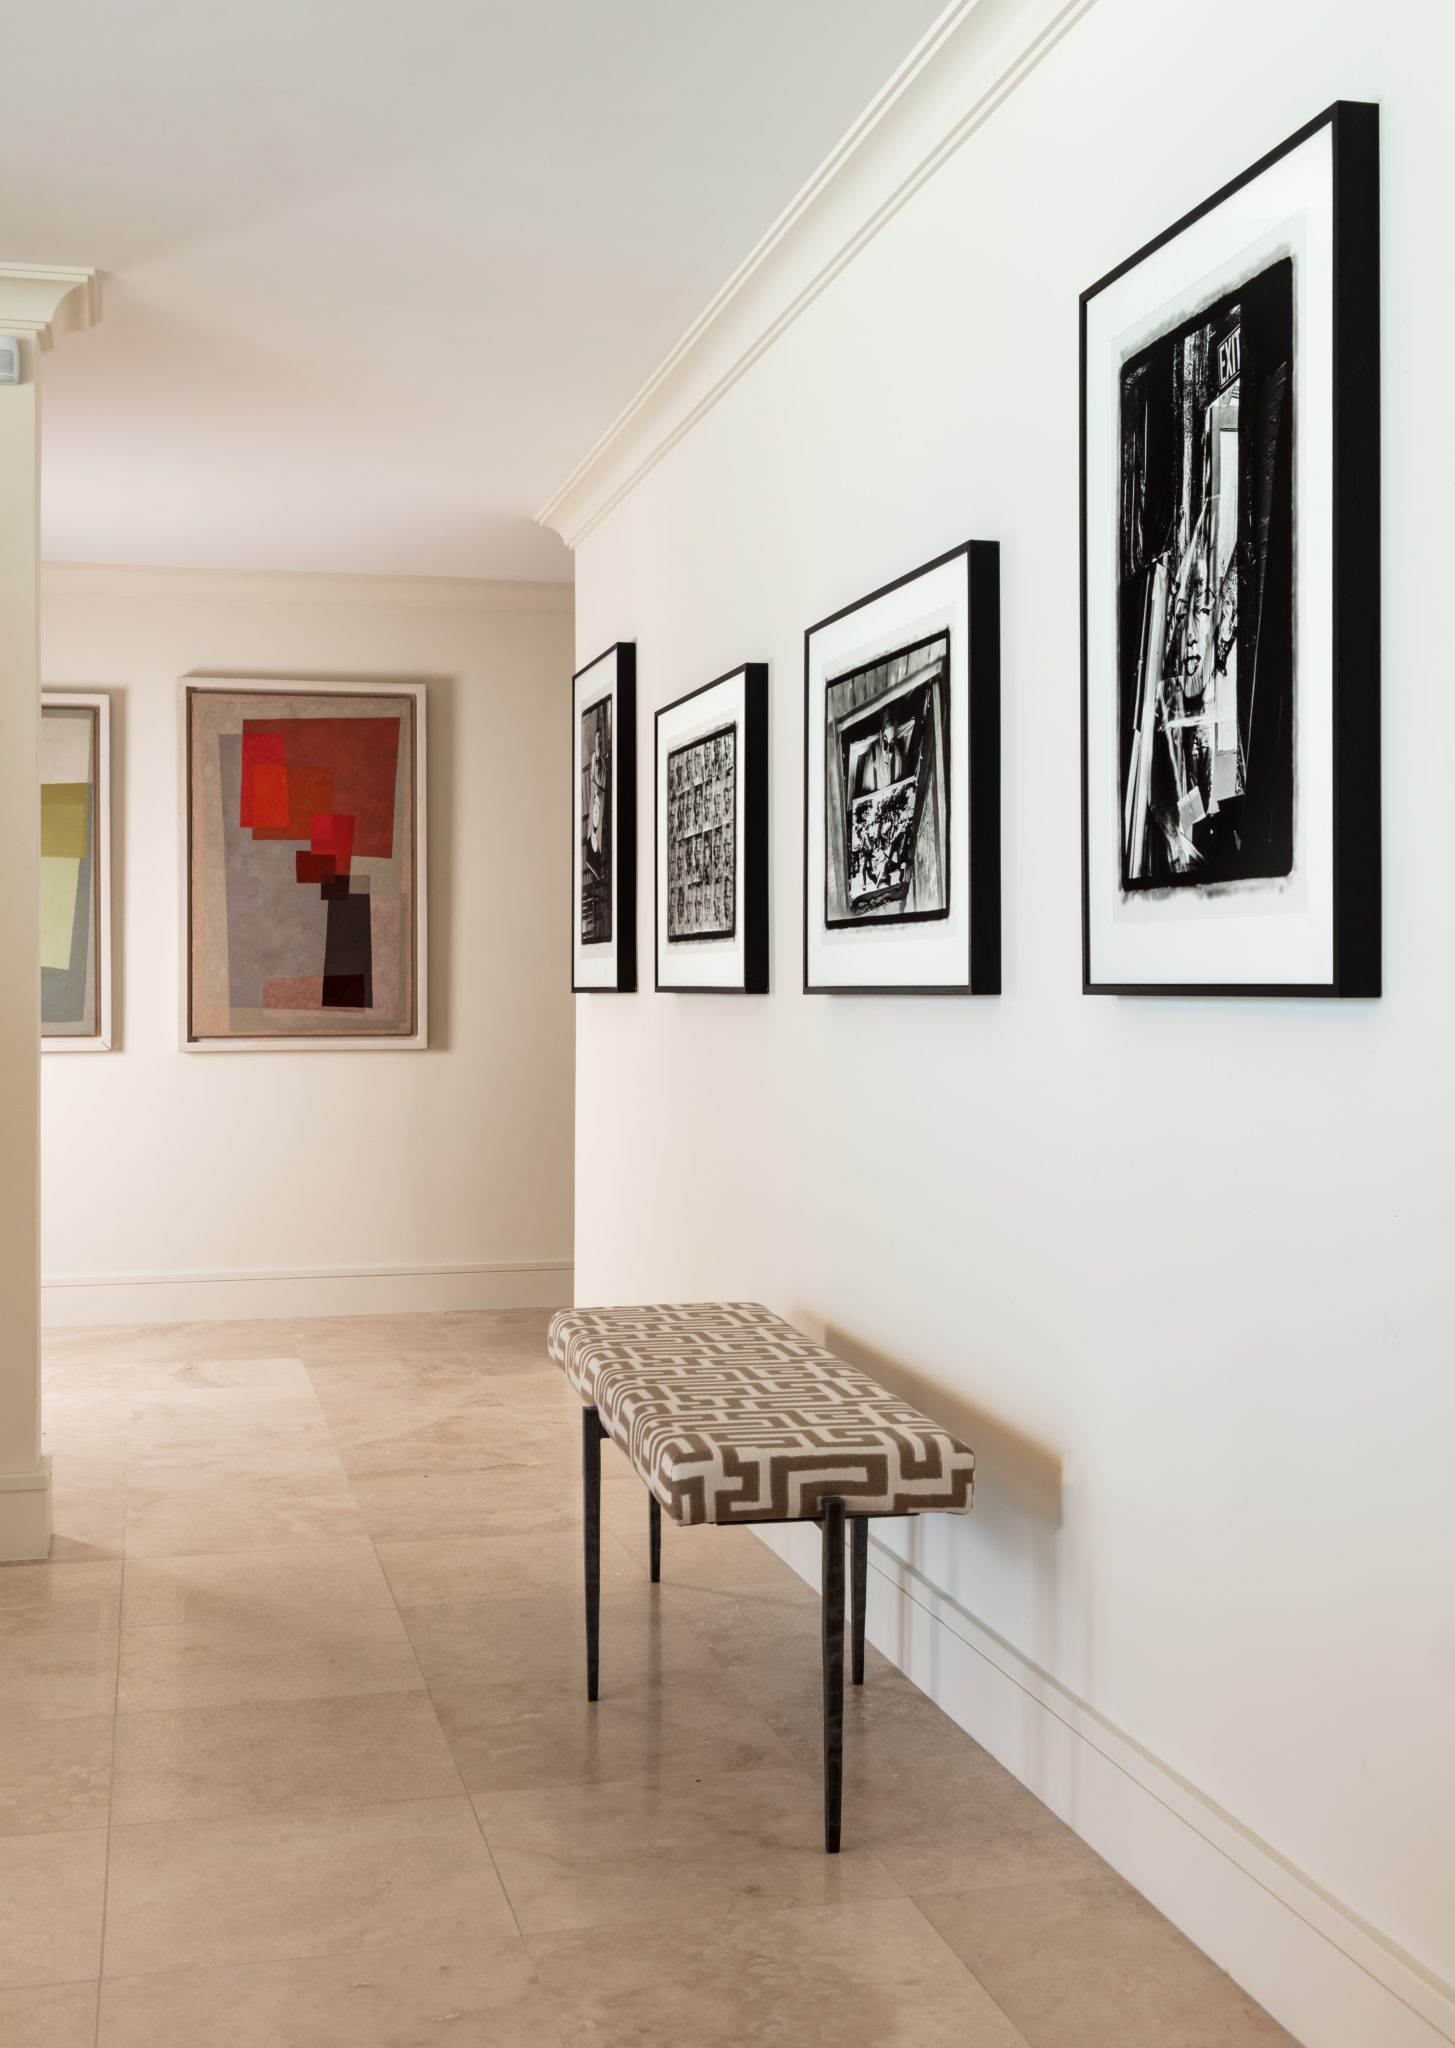 In a hallway gallery, a single bench is inspired by elongated forms. by Gil Walsh Interiors